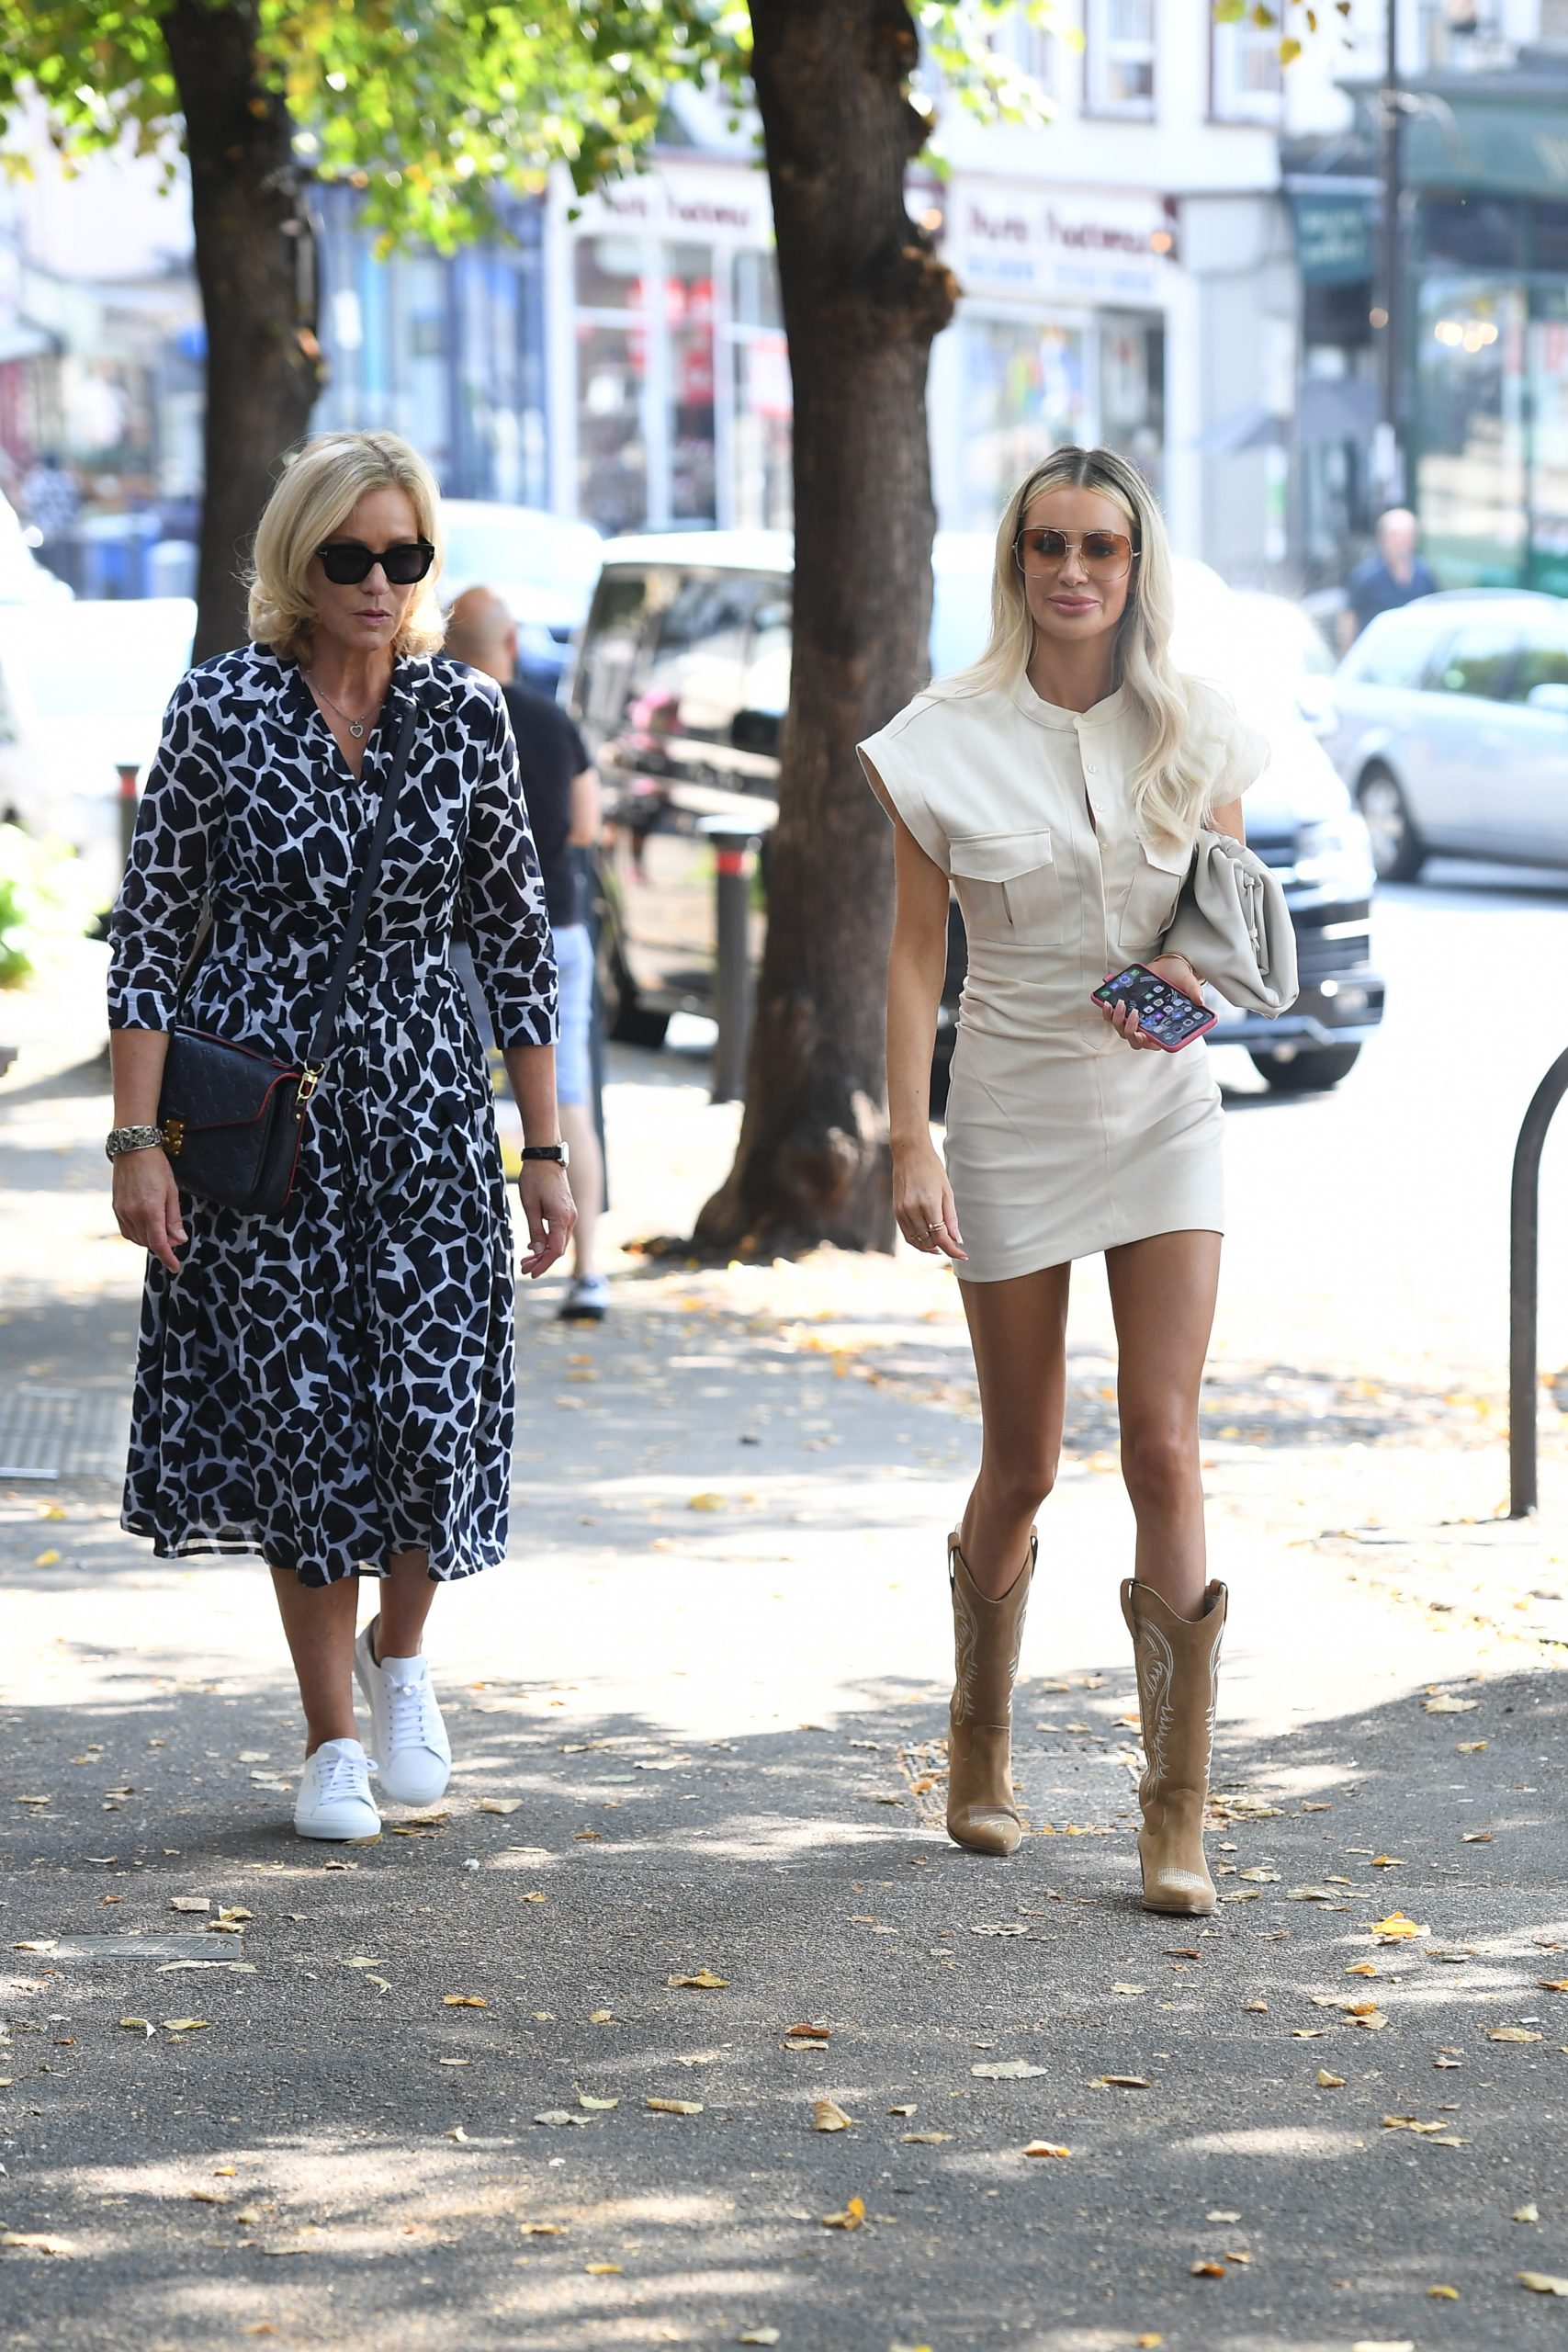 Olivia Attwood 2020 : Olivia Attwood – Leggy in white dress while out in London-10